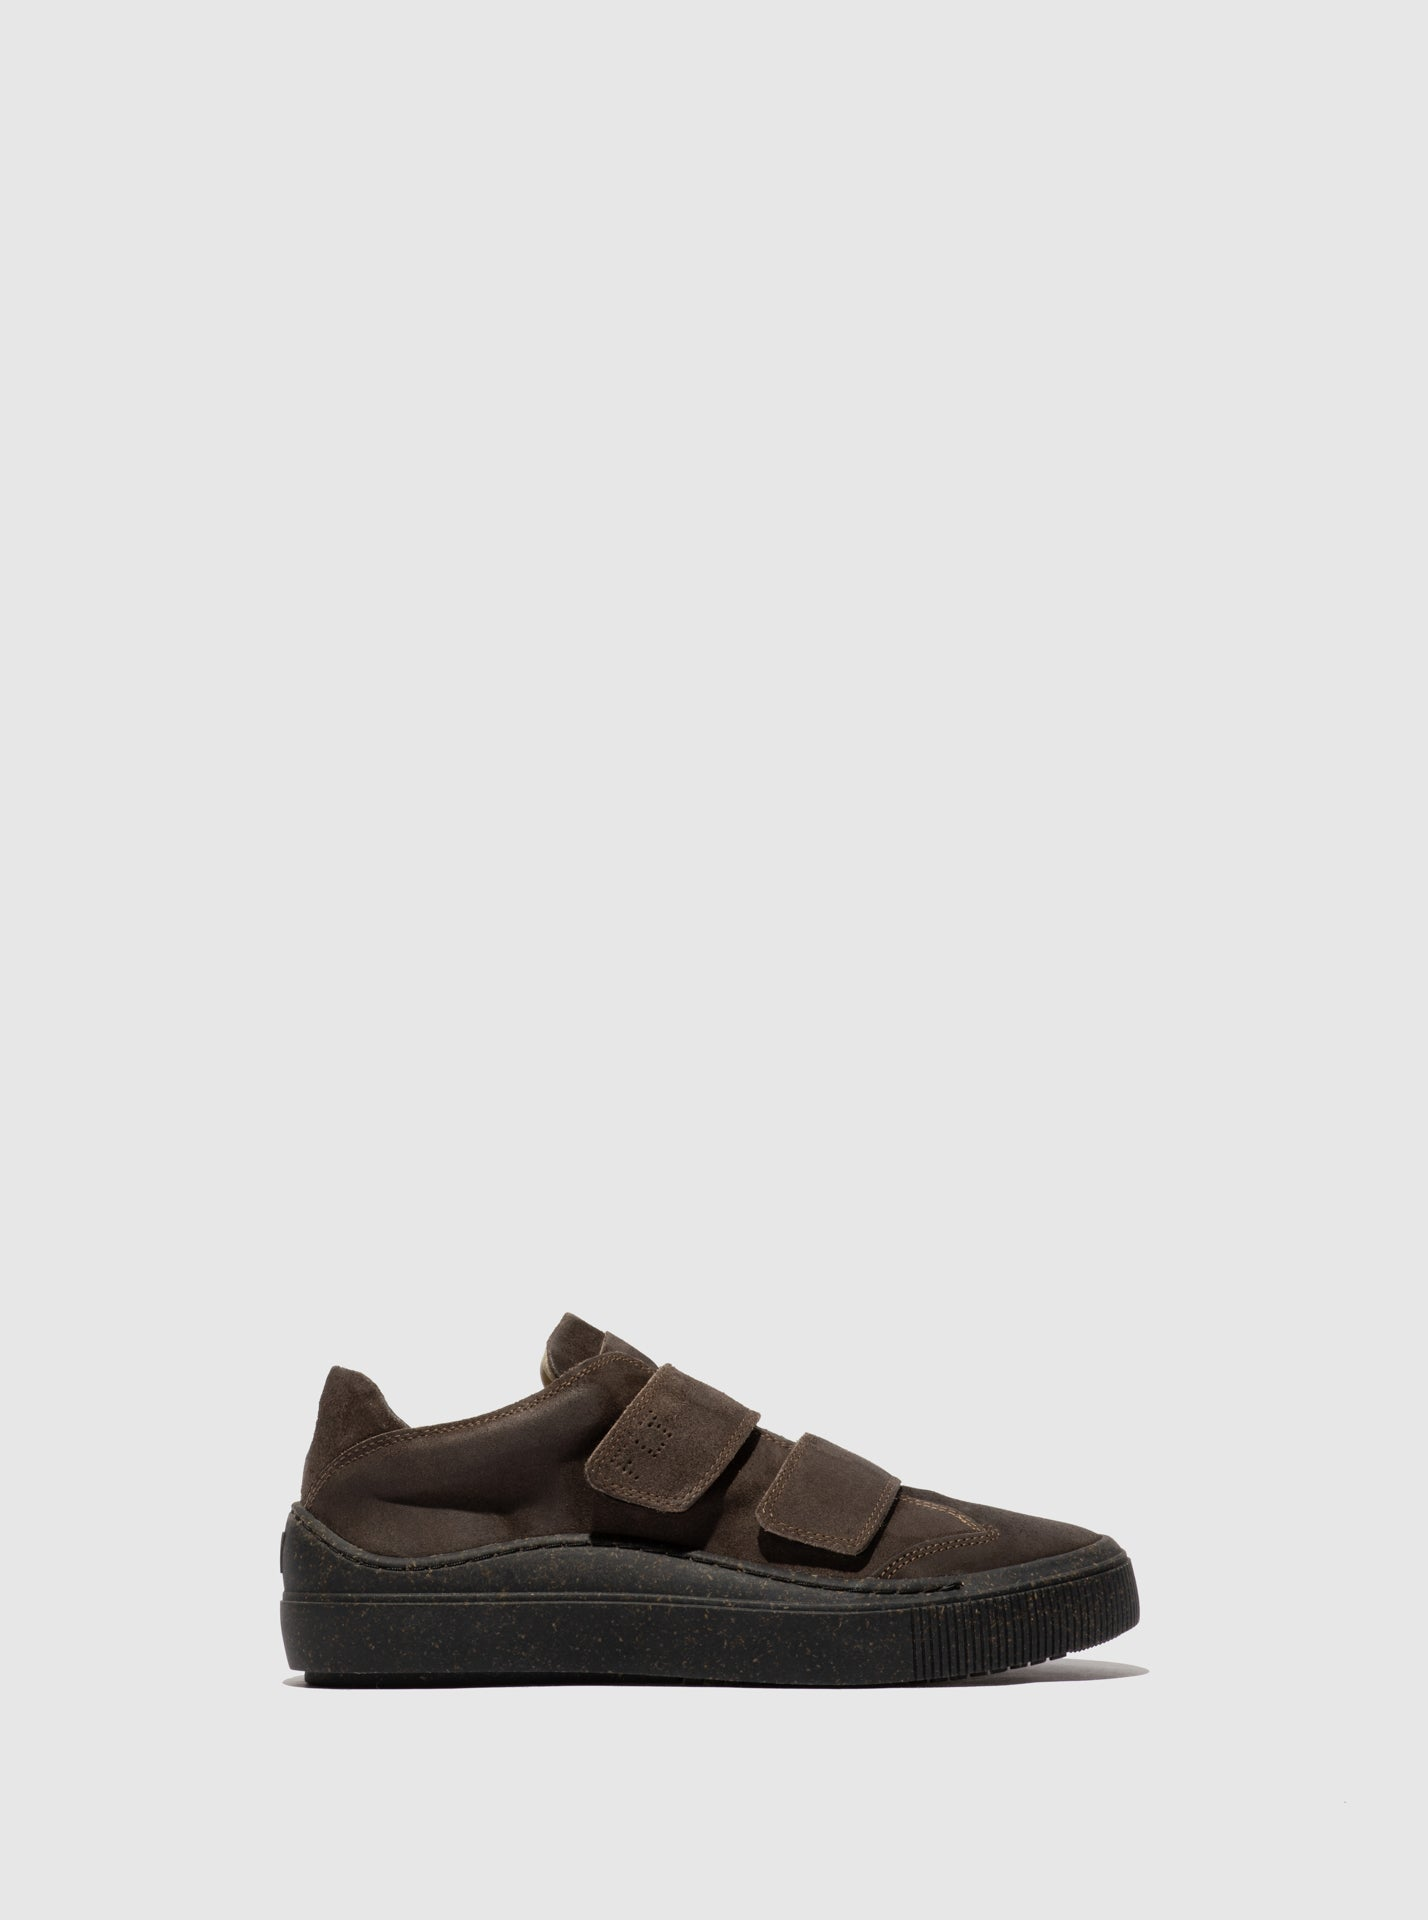 Fly London Ténis com Velcro SEVU416FLY SUEDEVEGETALBEAT ASFALT